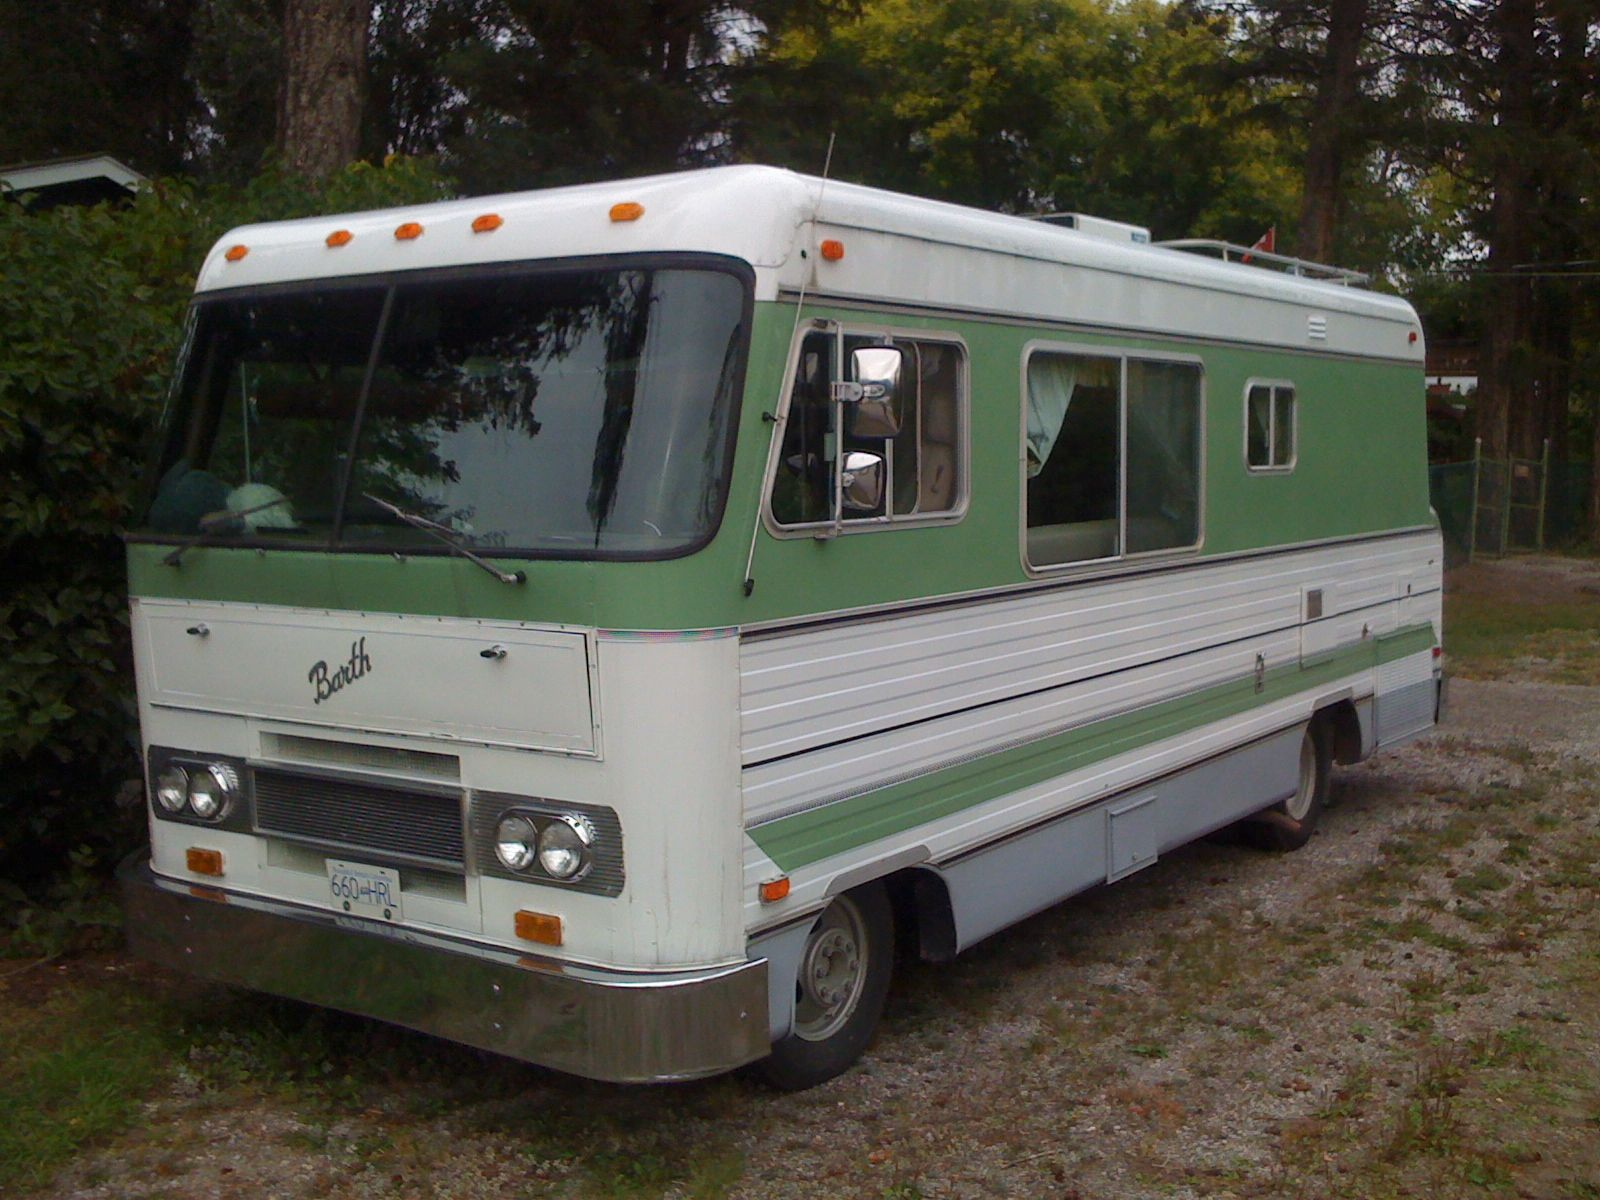 Myrtle The 1964 Travco Motorhome Other Motorhomes